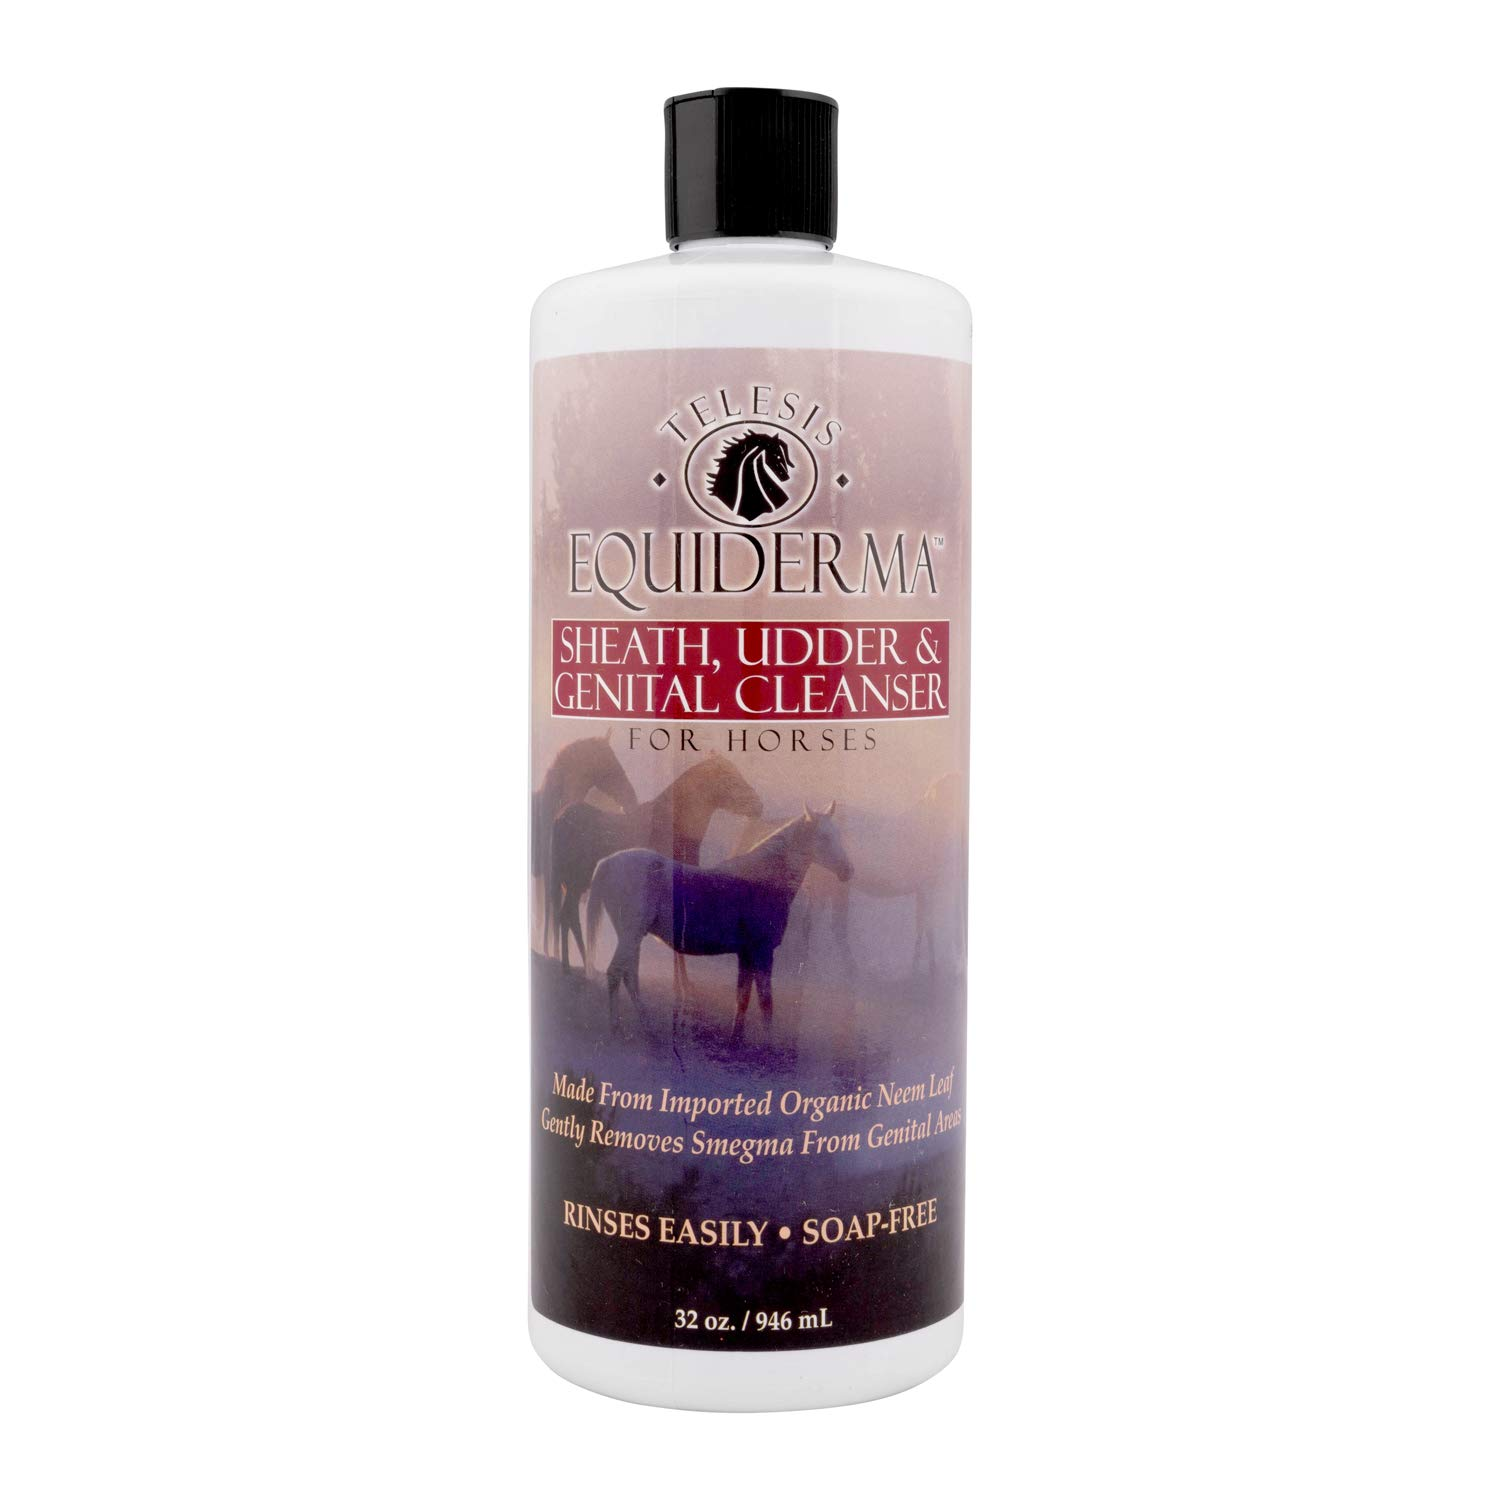 Equiderma Sheath, Udder & Genital Cleanser for Horses